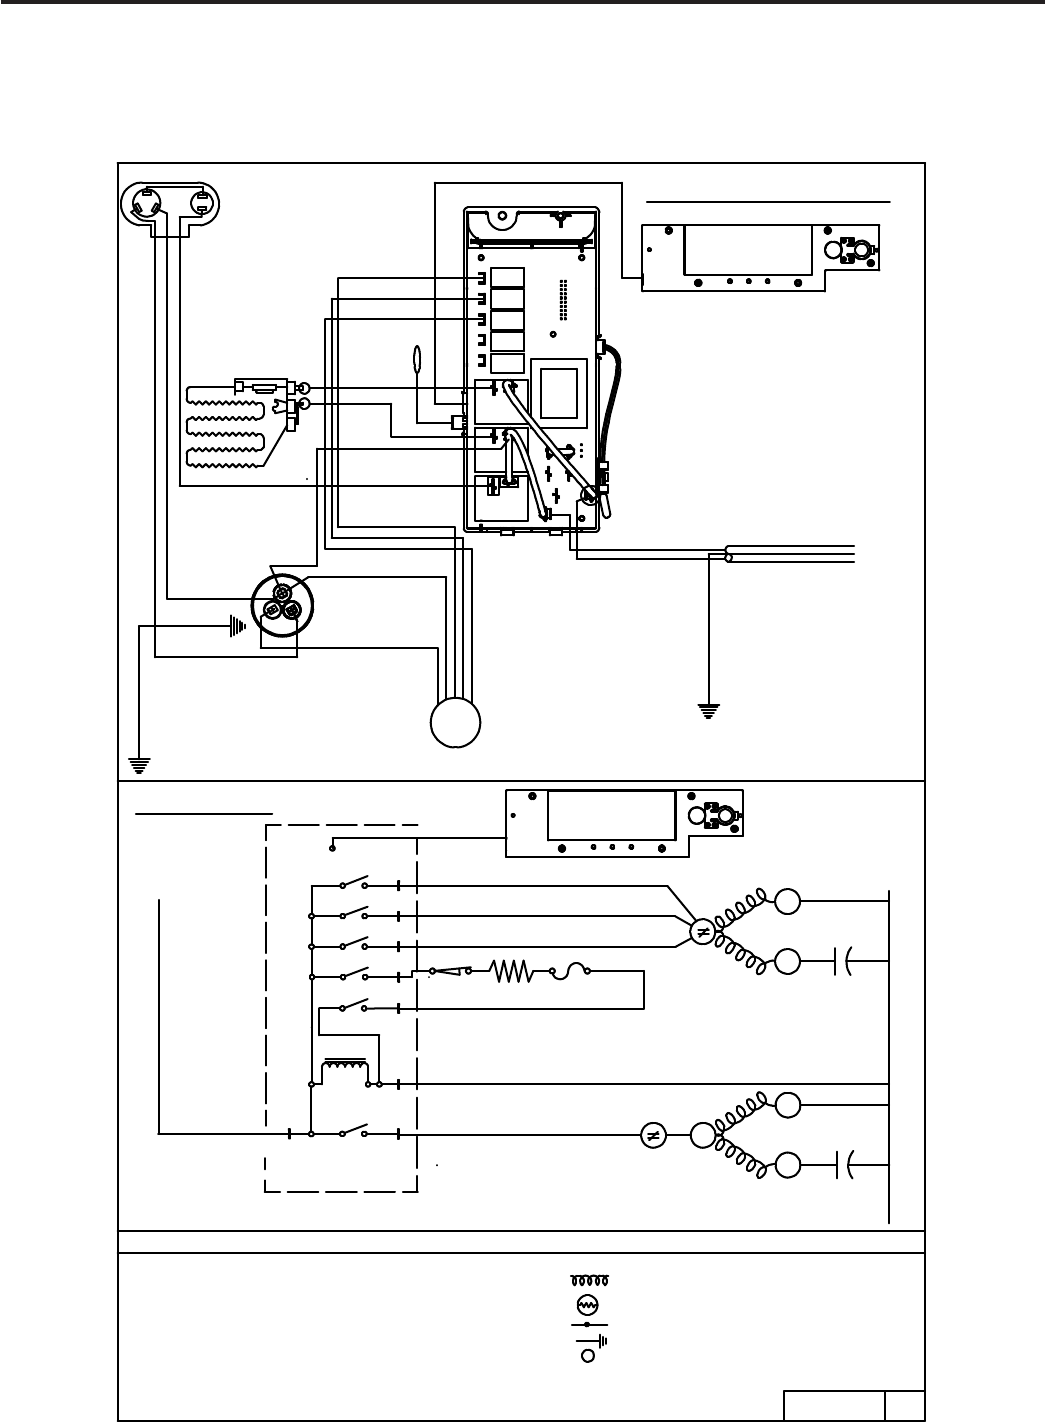 page 76 of friedrich air conditioner ss14n10* user guide  friedrich ac wiring diagram #7